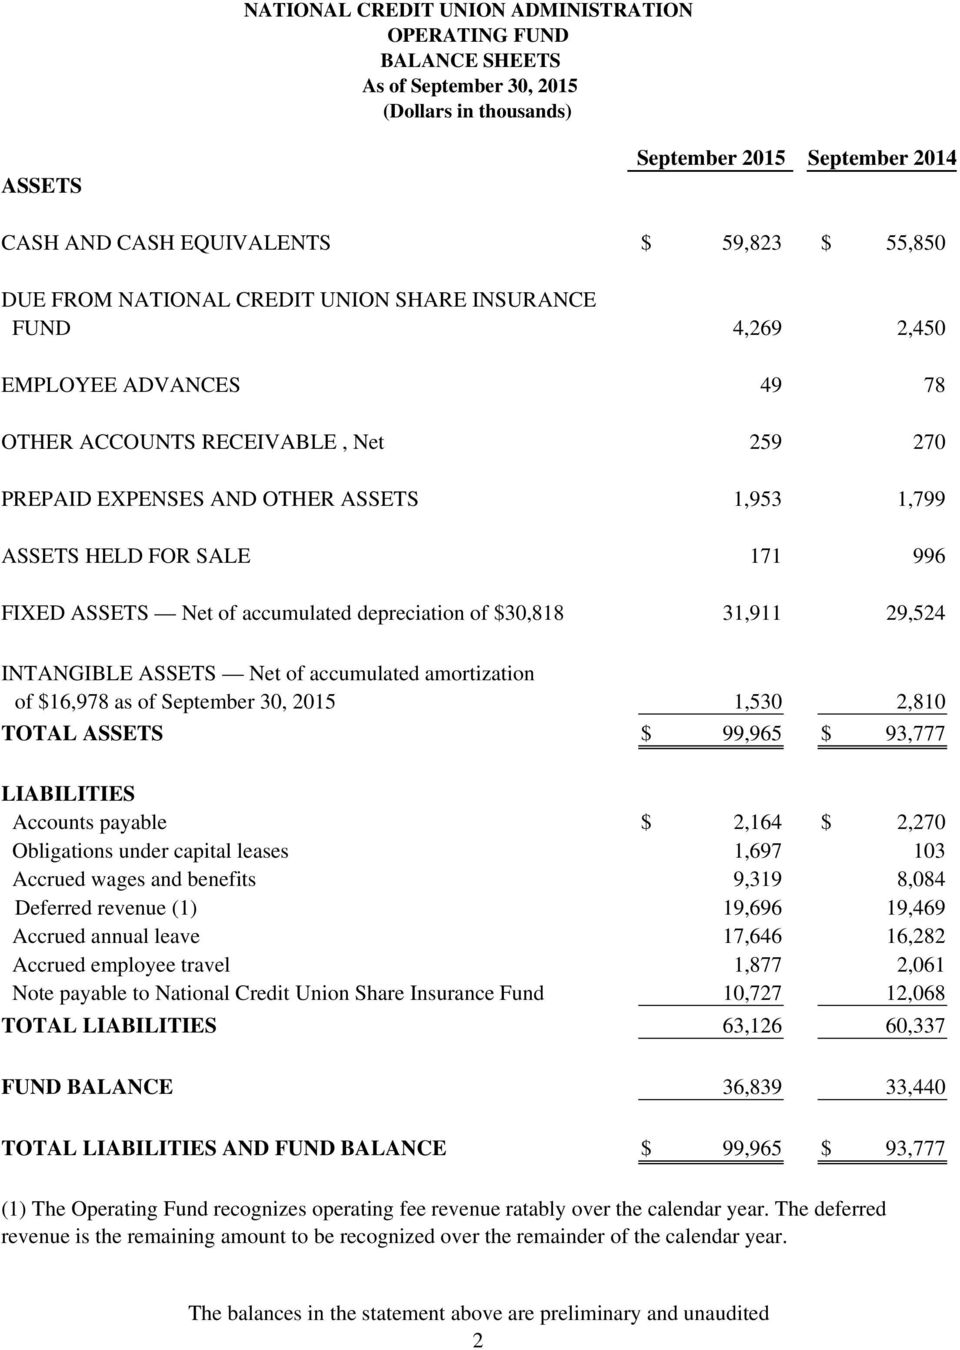 INTANGIBLE ASSETS Net of accumulated amortization of $16,978 as of September 30, 2015 1,530 2,810 TOTAL ASSETS $ 99,965 $ 93,777 LIABILITIES Accounts payable $ 2,164 $ 2,270 Obligations under capital